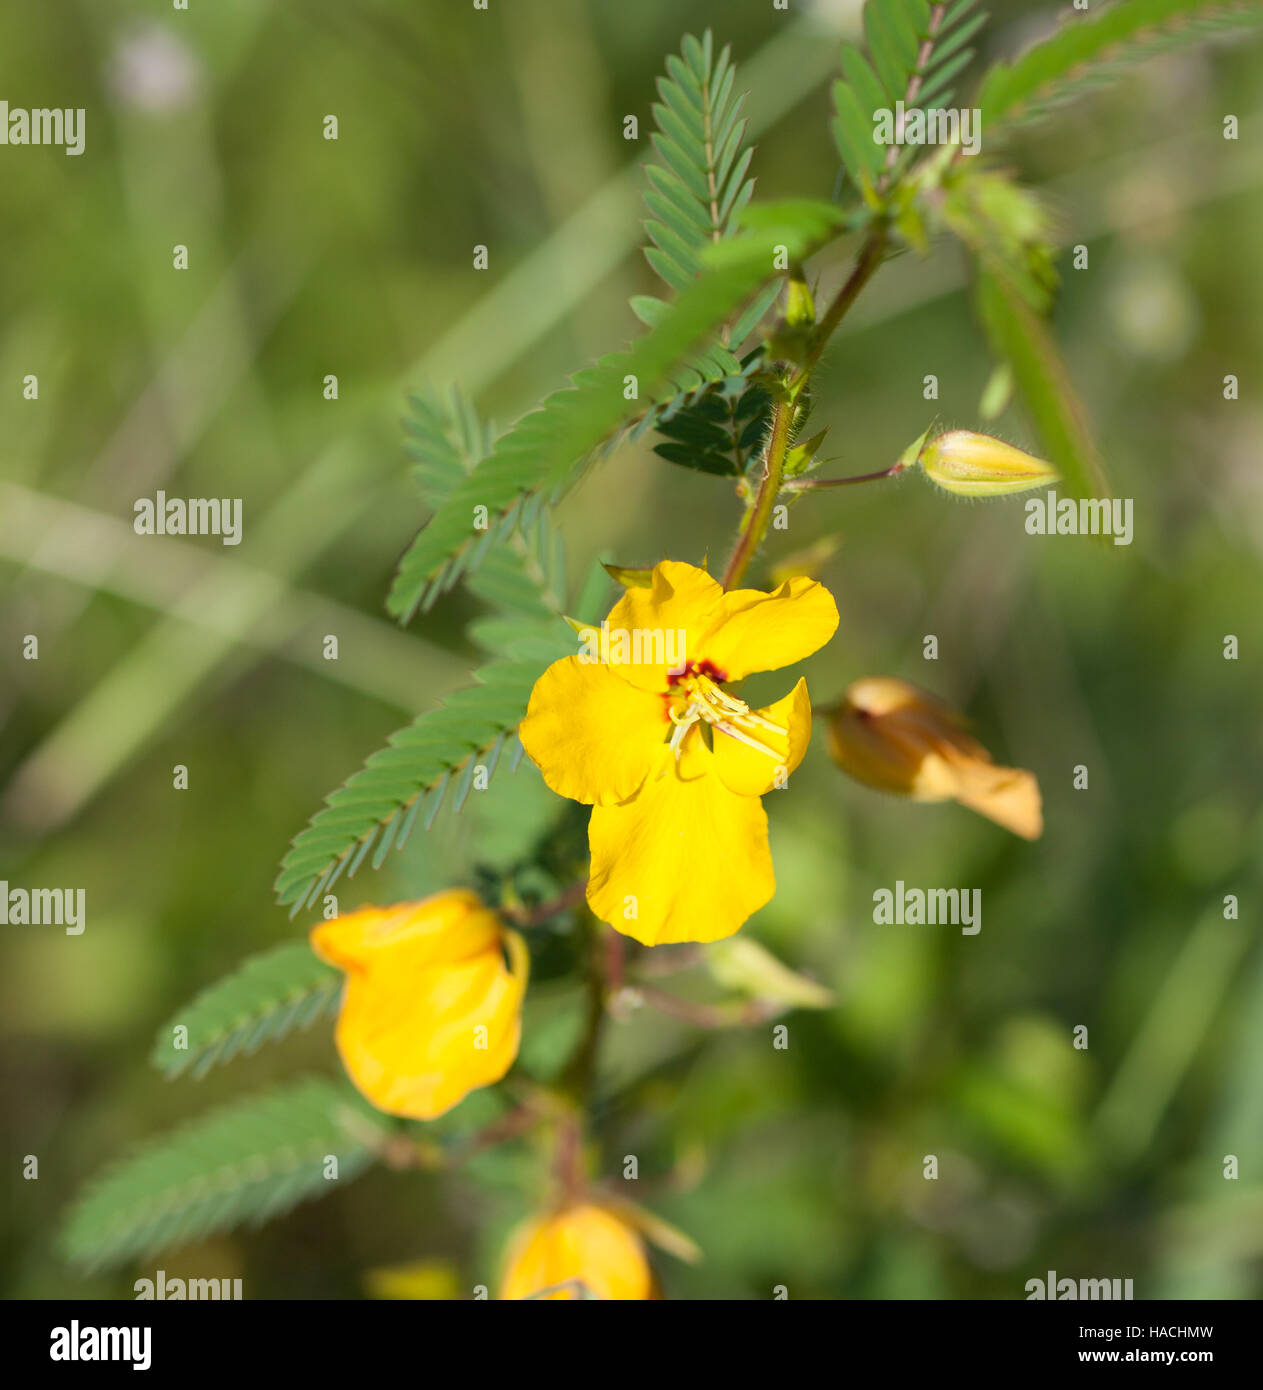 Meadow Pea Flower Stock Photos Meadow Pea Flower Stock Images Alamy